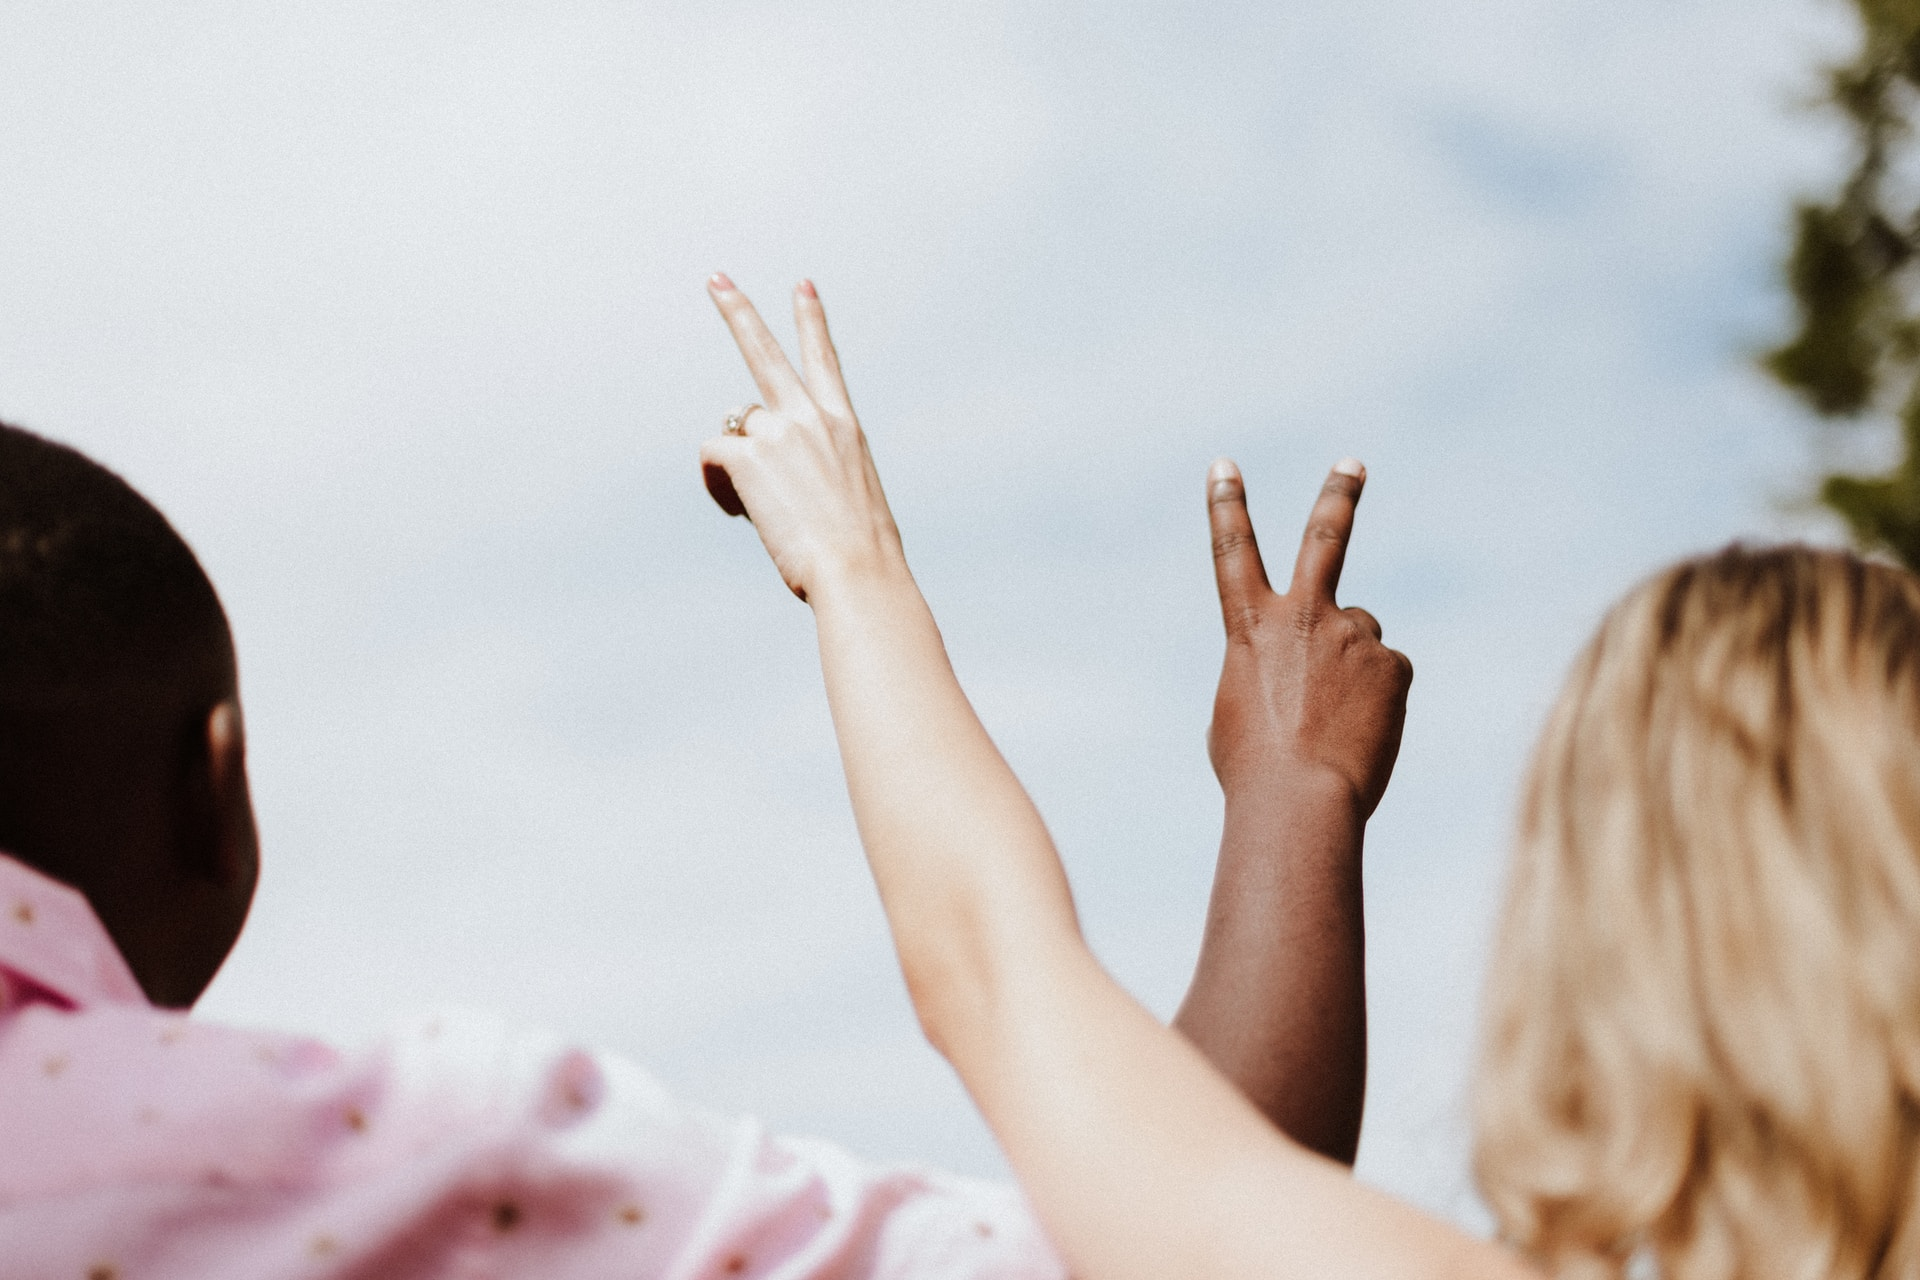 woman in white and pink floral shirt raising her hands